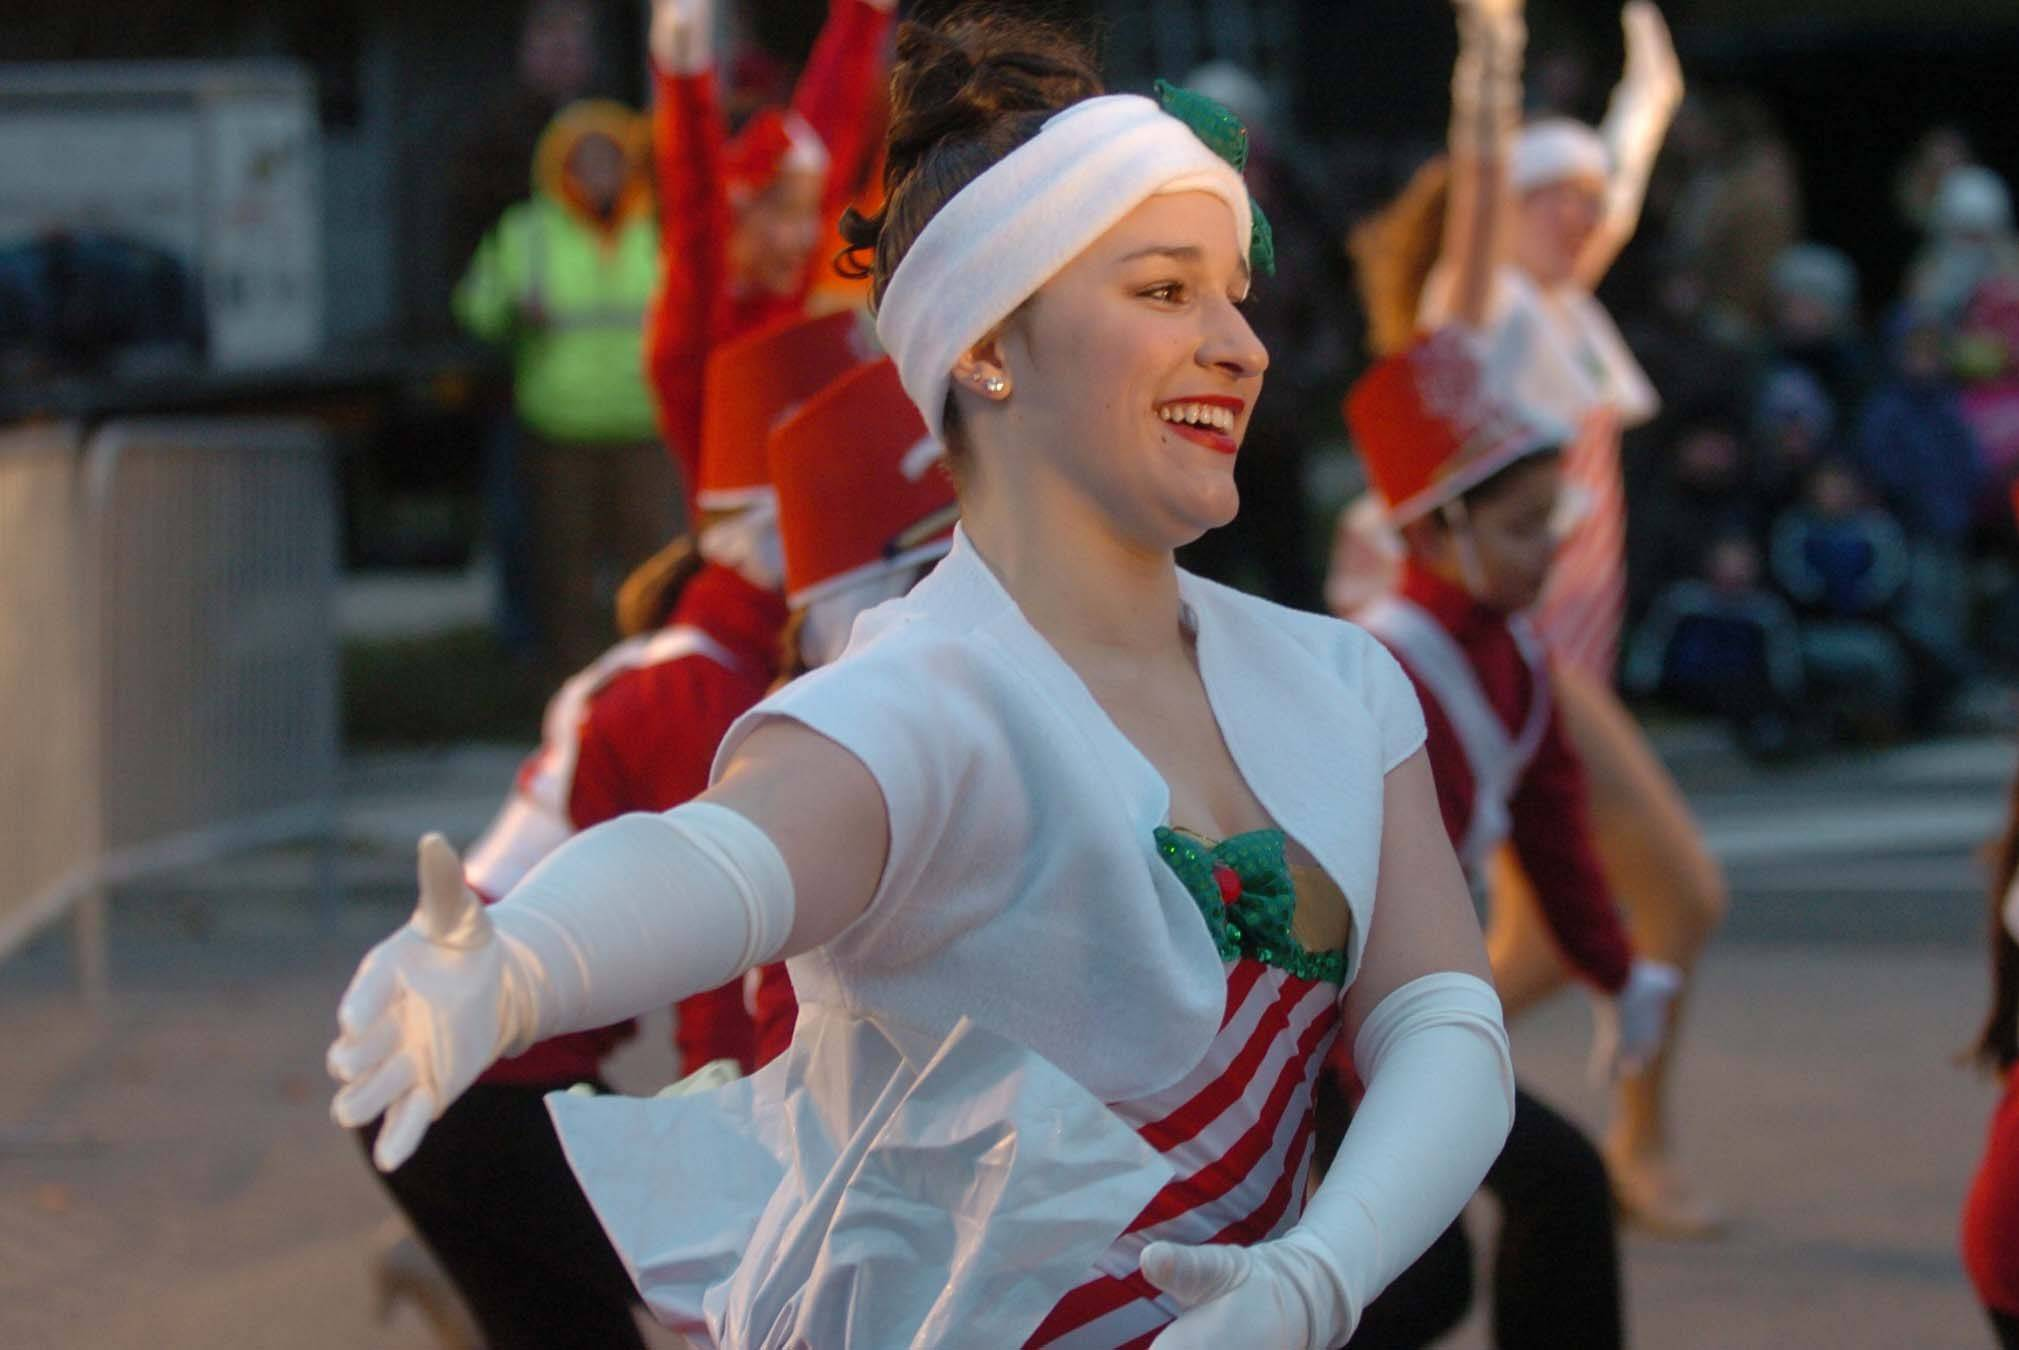 Devon Lloyd of Naperville takes part in Naperville's Hometown Holidays celebration Friday.